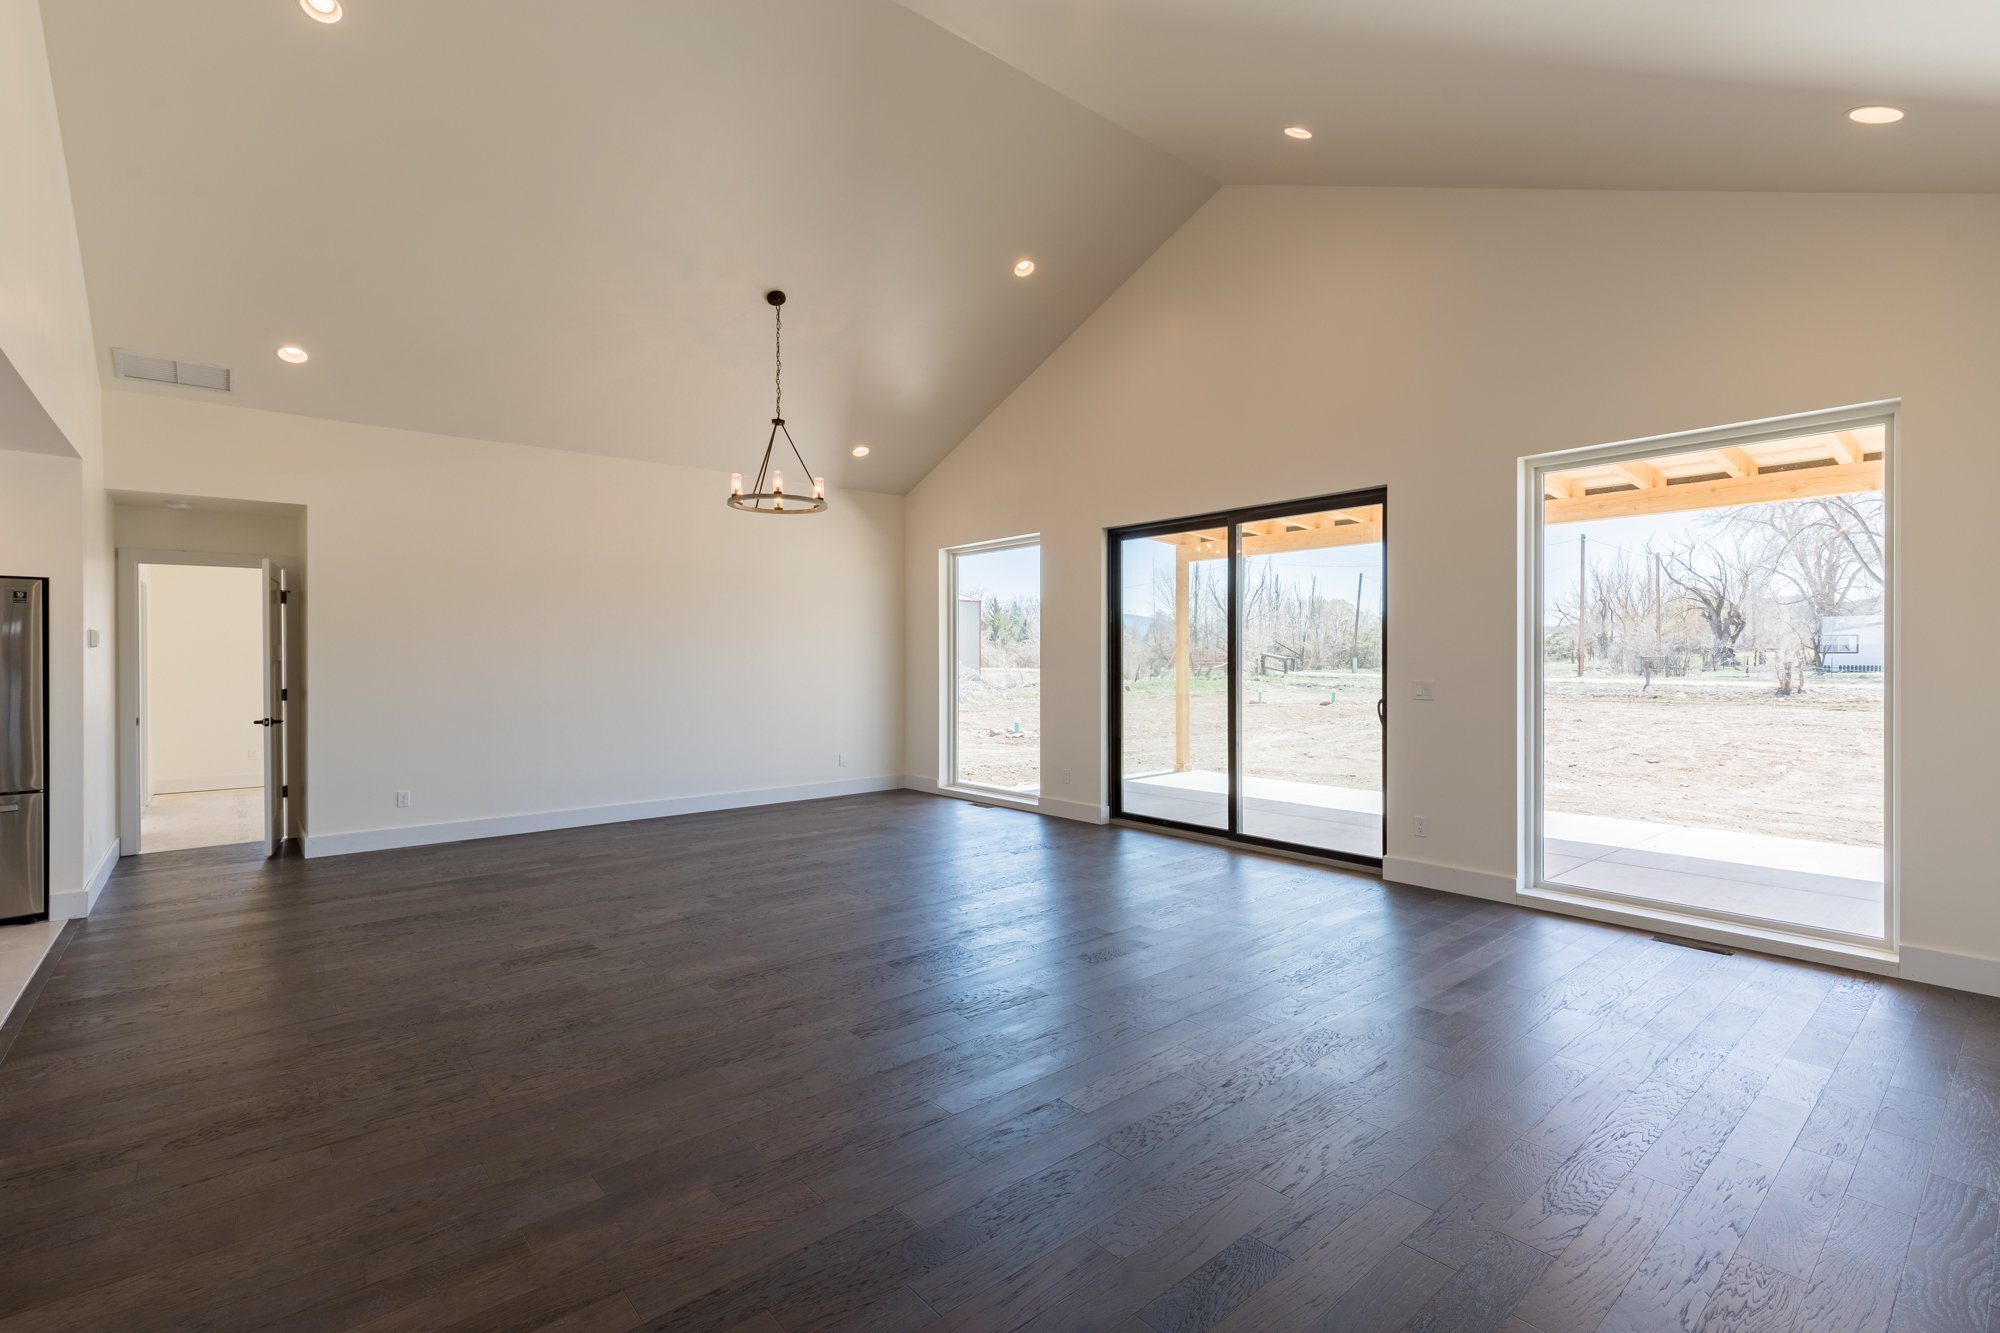 Living Room with Vaulted Ceiling - TBD Highway 550 Montrose, CO 81403 - Atha Team New Construction Real Estate